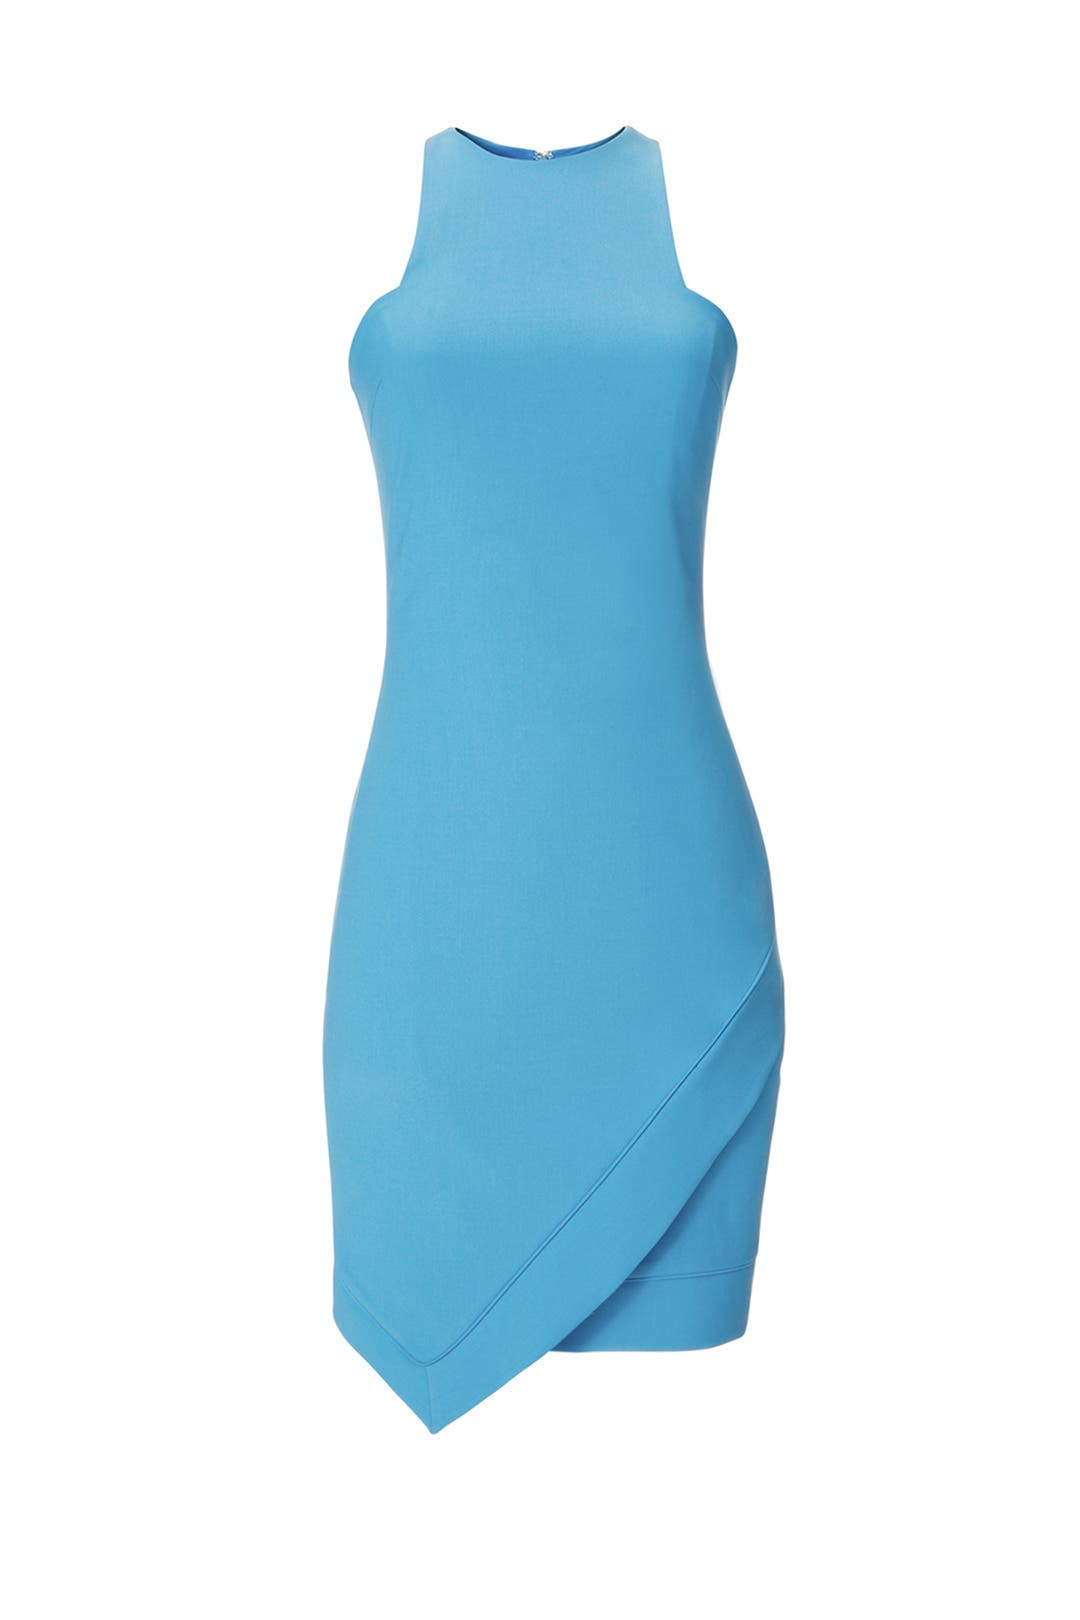 Blue Parrot Dress by Elizabeth and James for $35 - $50 | Rent the Runway